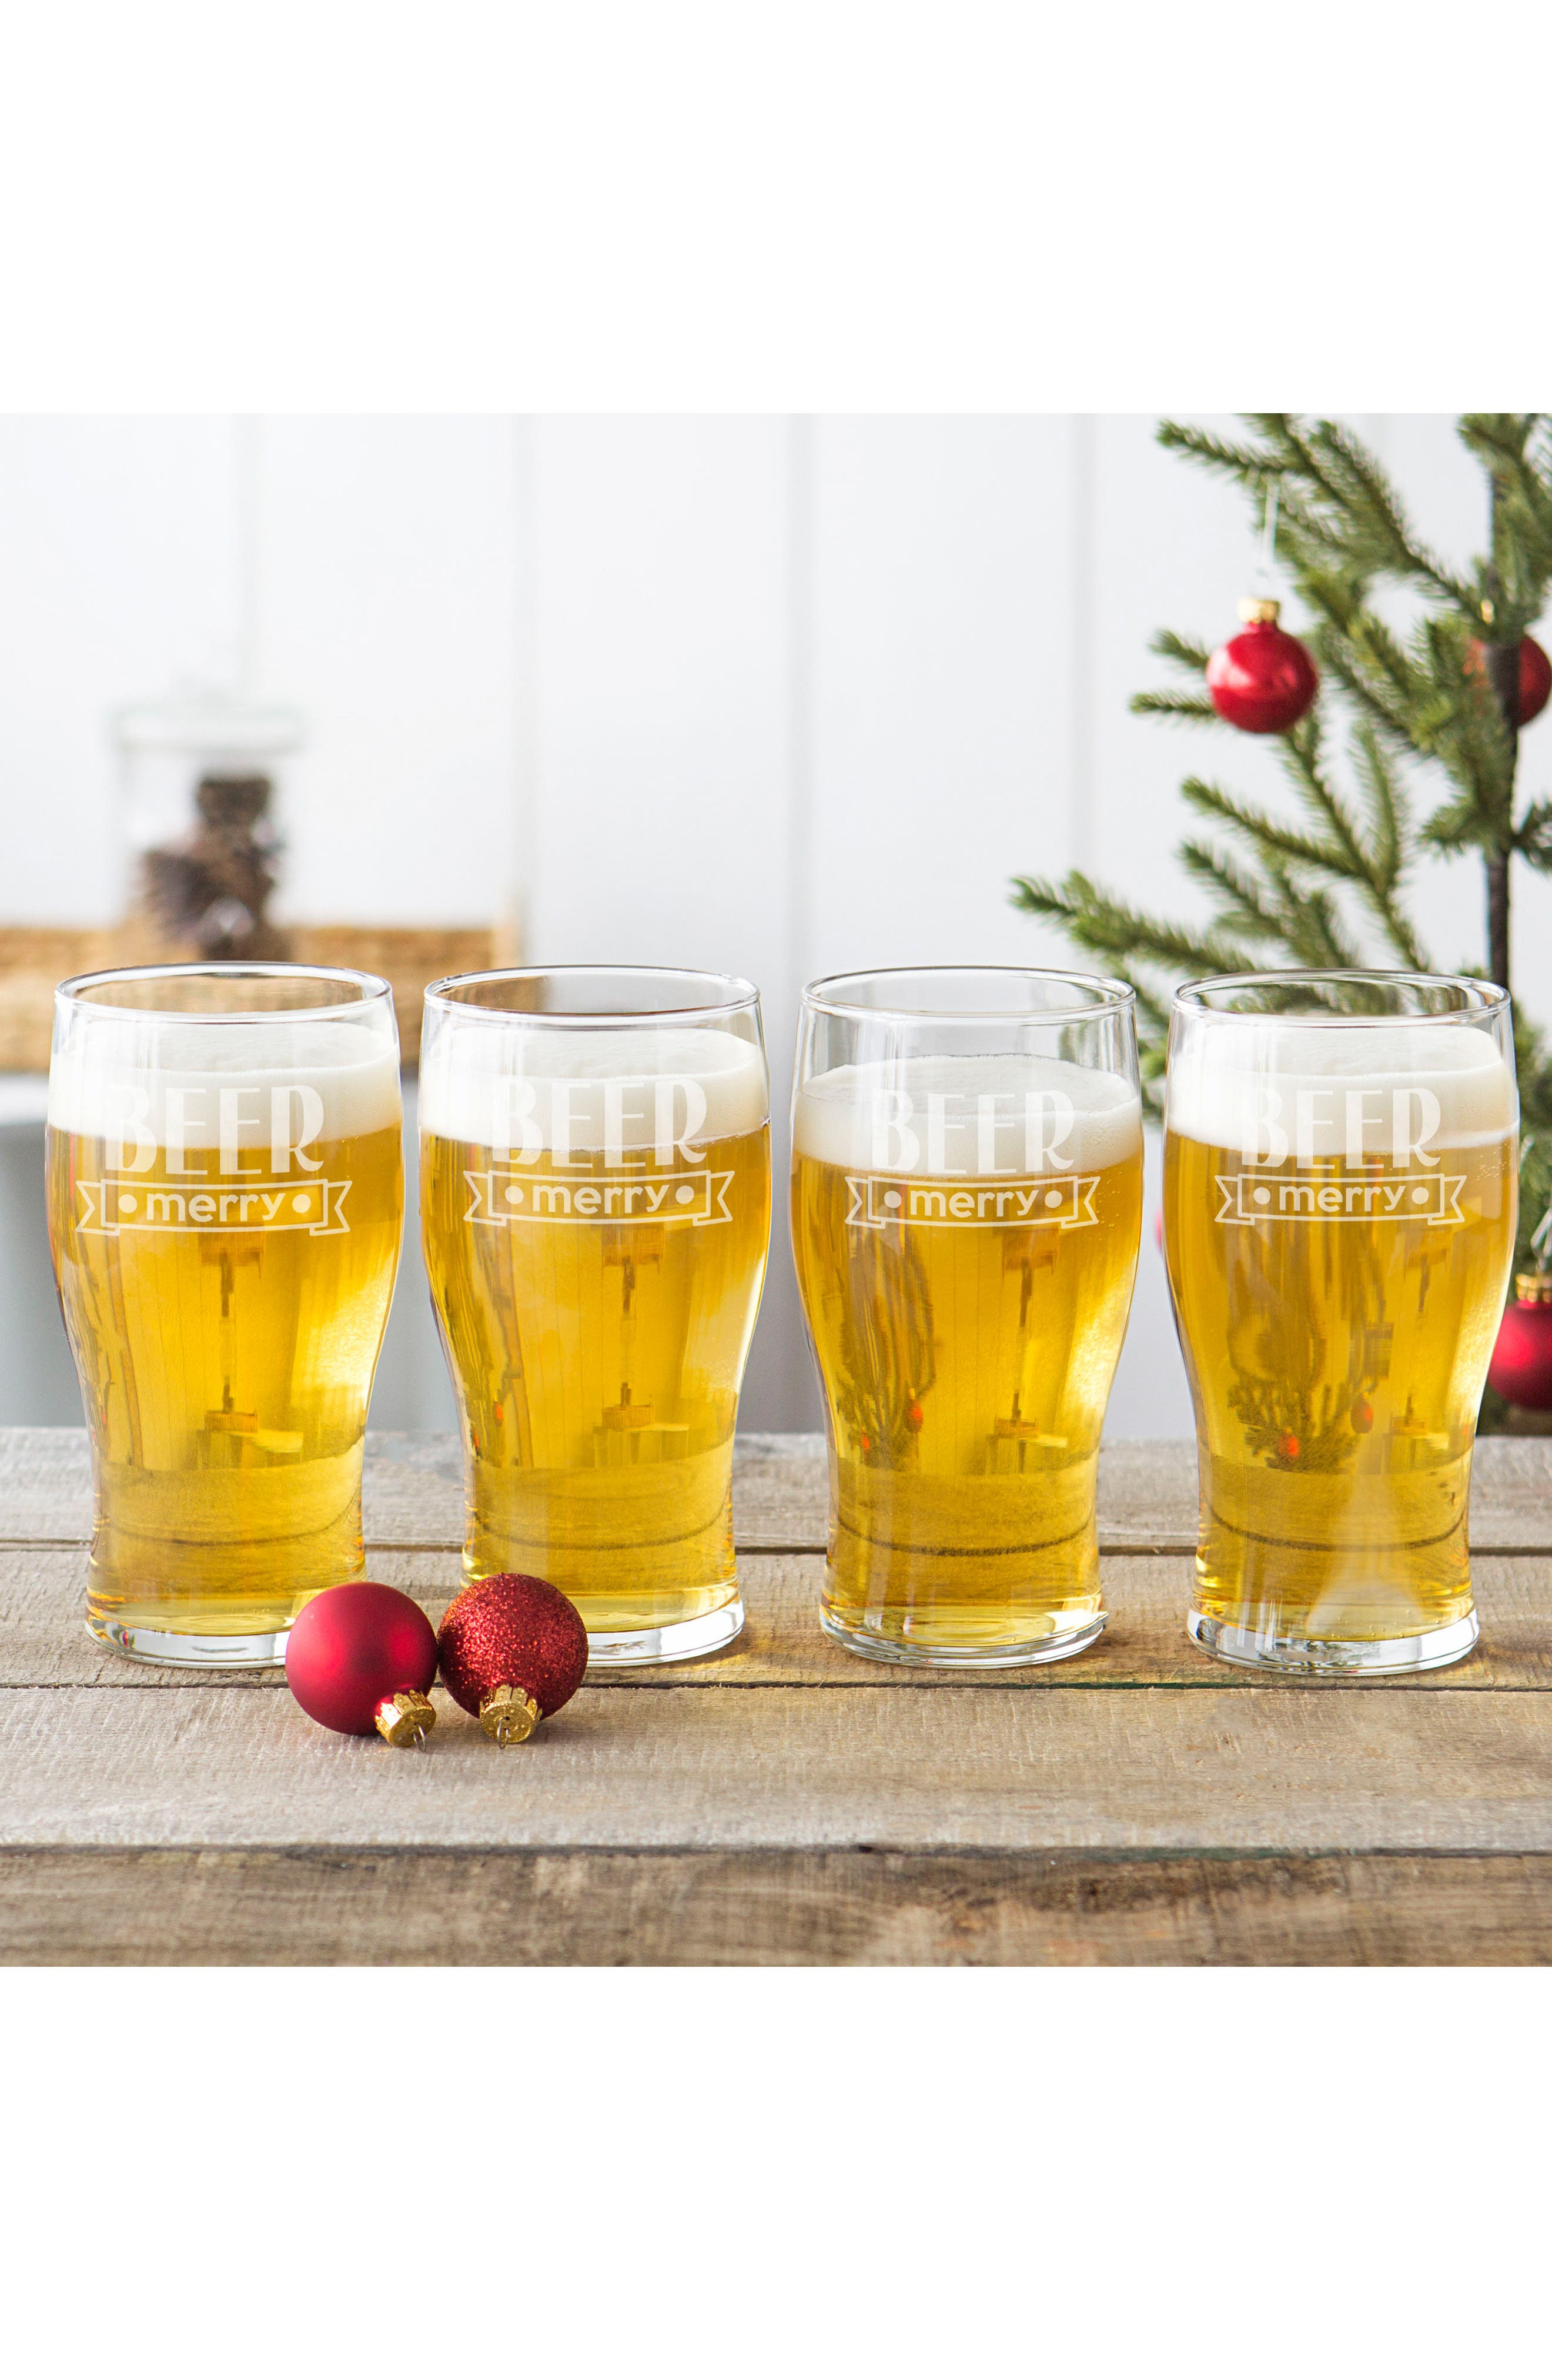 Beer Merry Set of 4 Pilsner Glasses,                             Alternate thumbnail 2, color,                             Clear